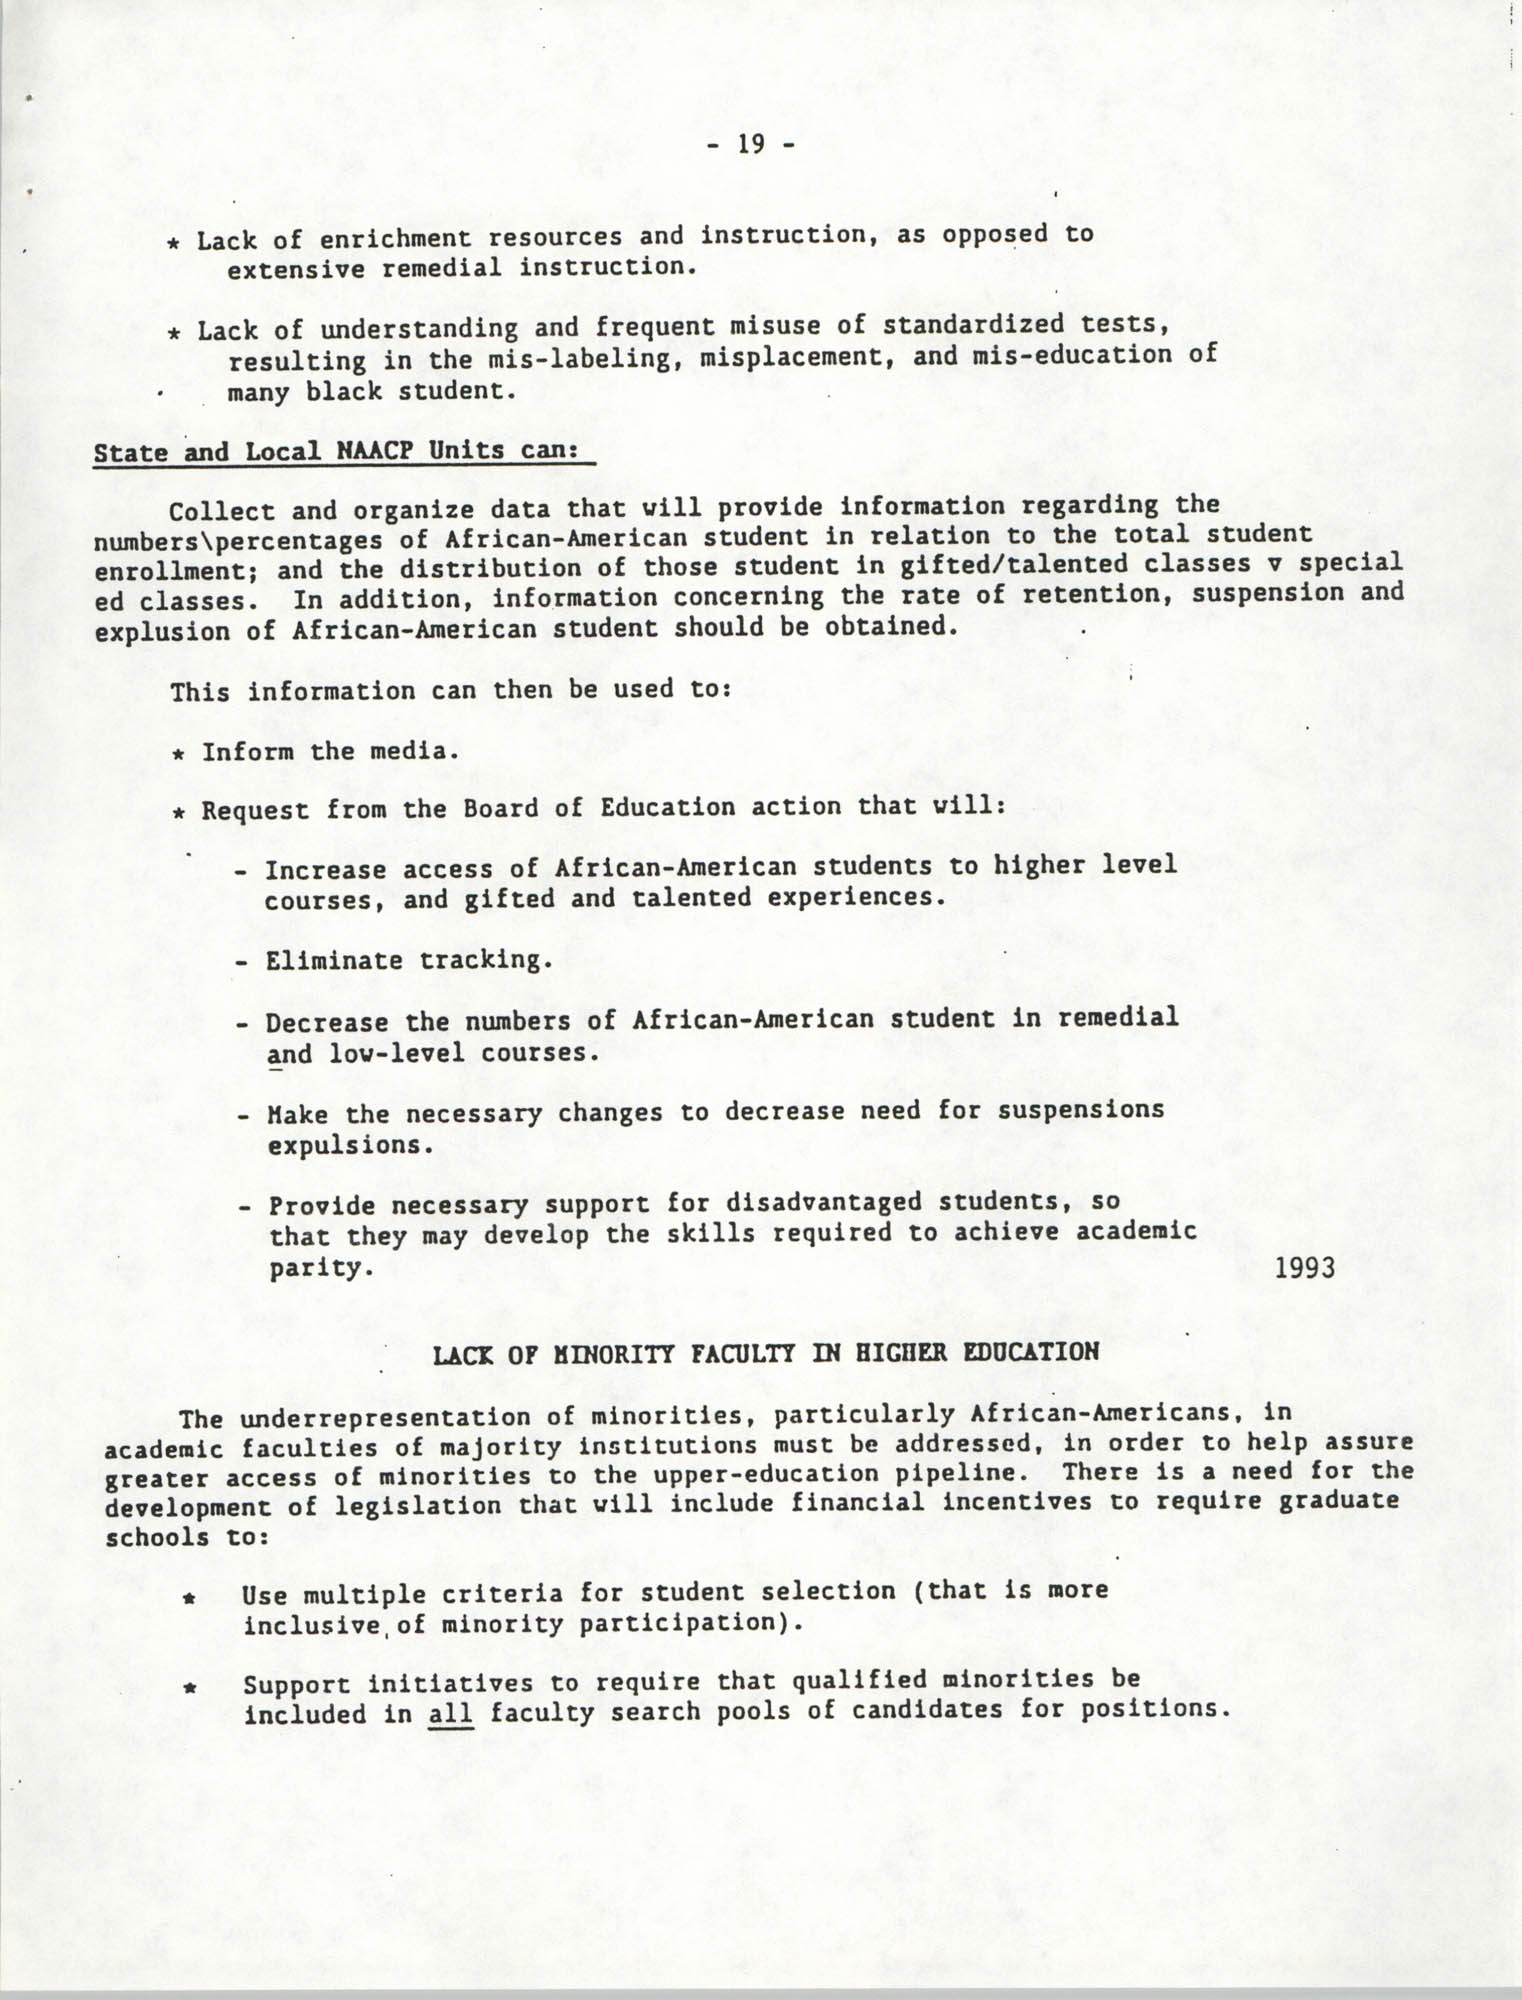 Education Resolutions 1993, Page 19